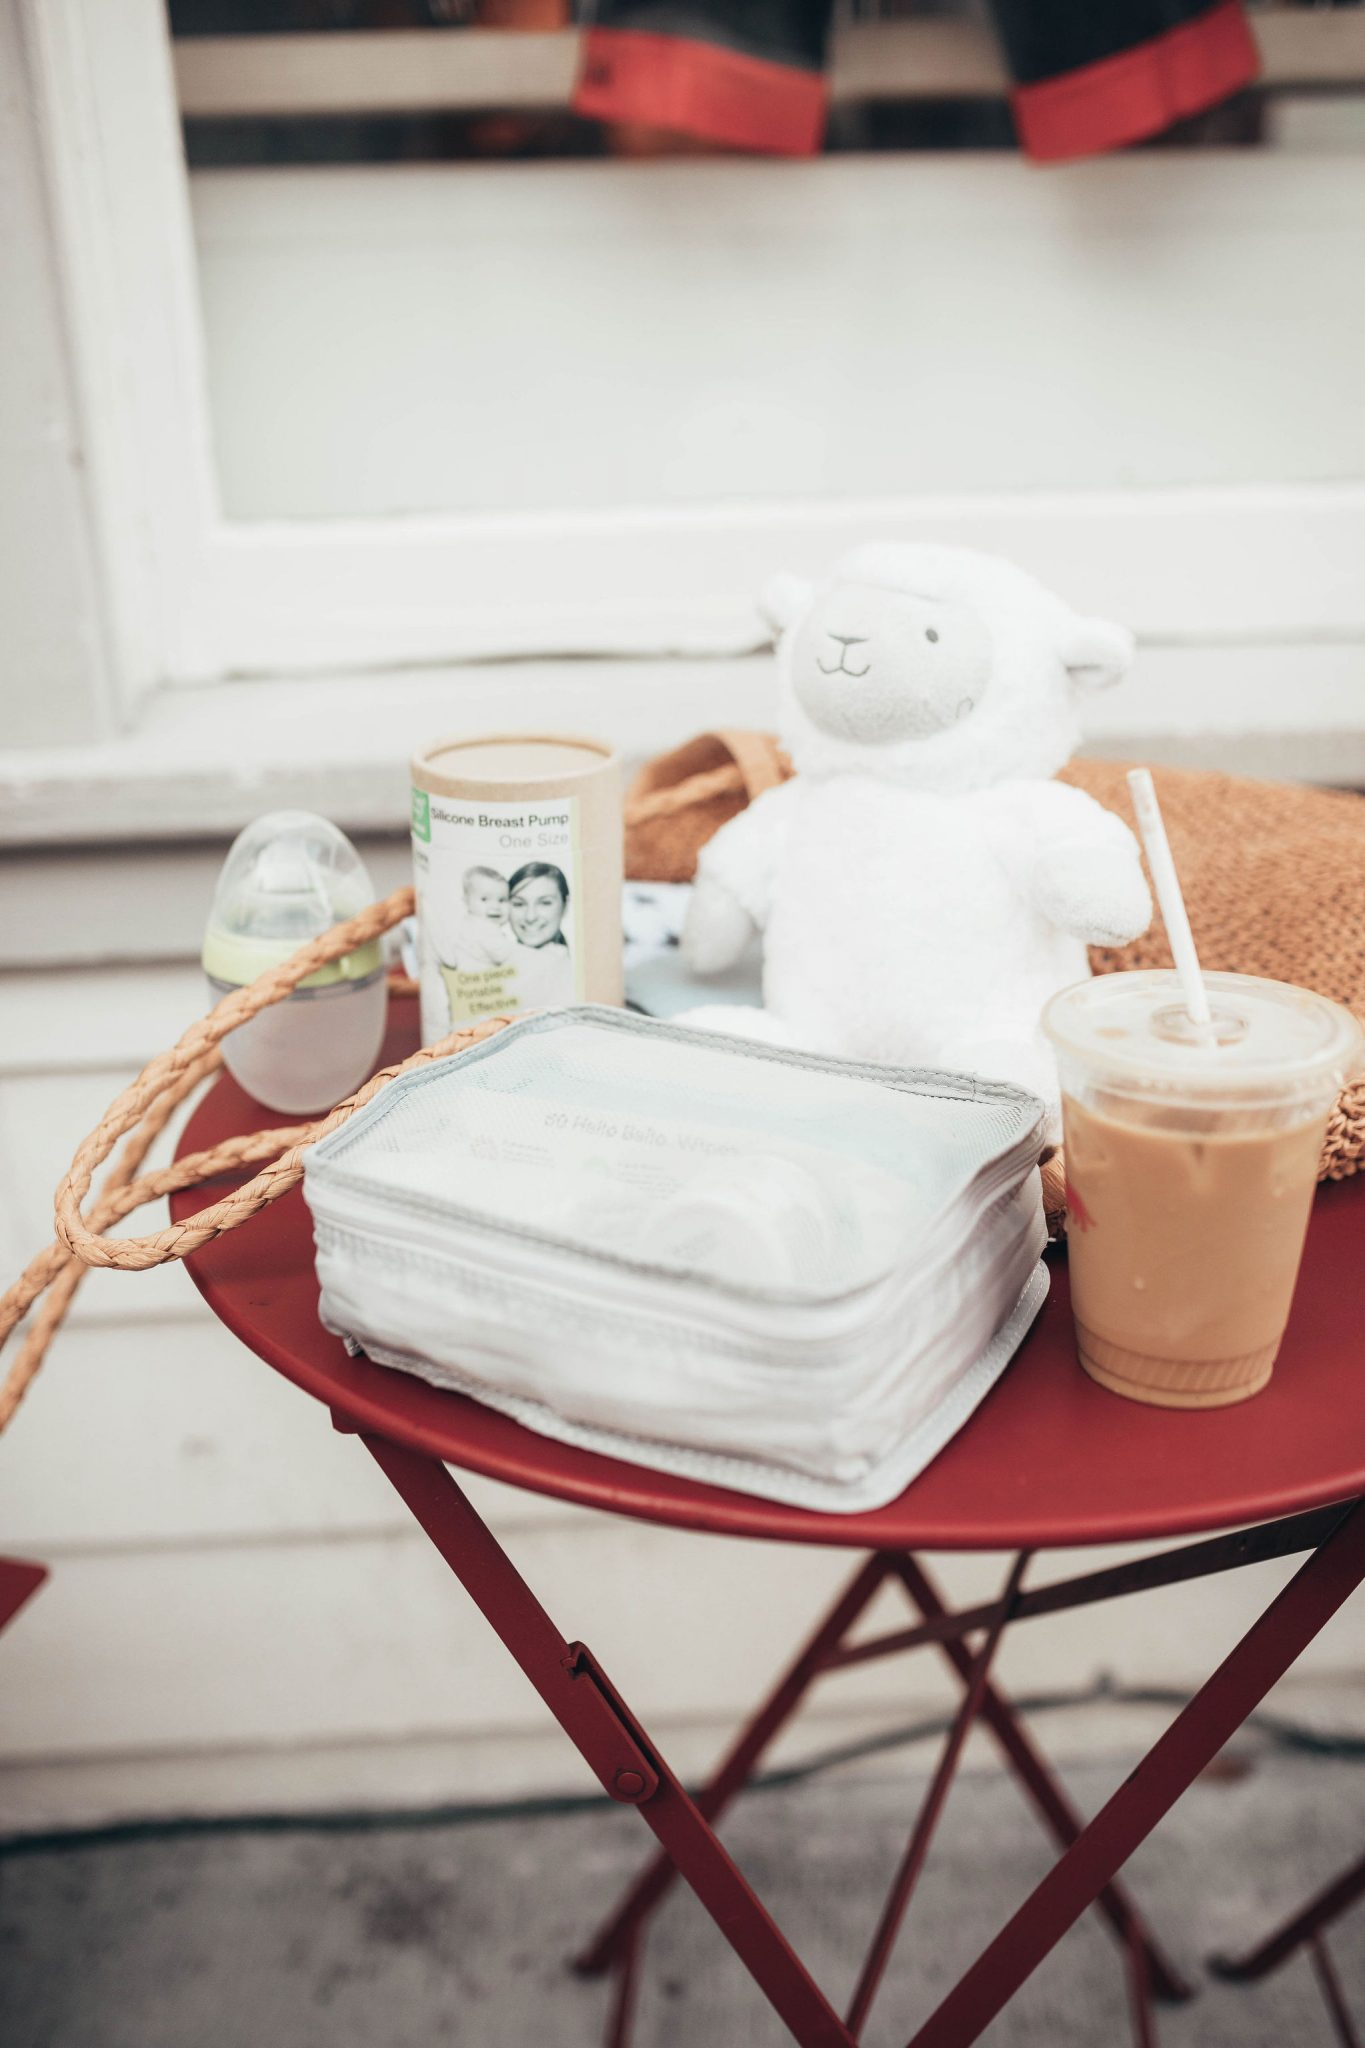 25 Bestseller Walmart Baby Products by popular San Francisco life and style blog, Just Add Glam: image of a woman sitting at a cafe table outside with an iced coffee and various Walmart baby products.